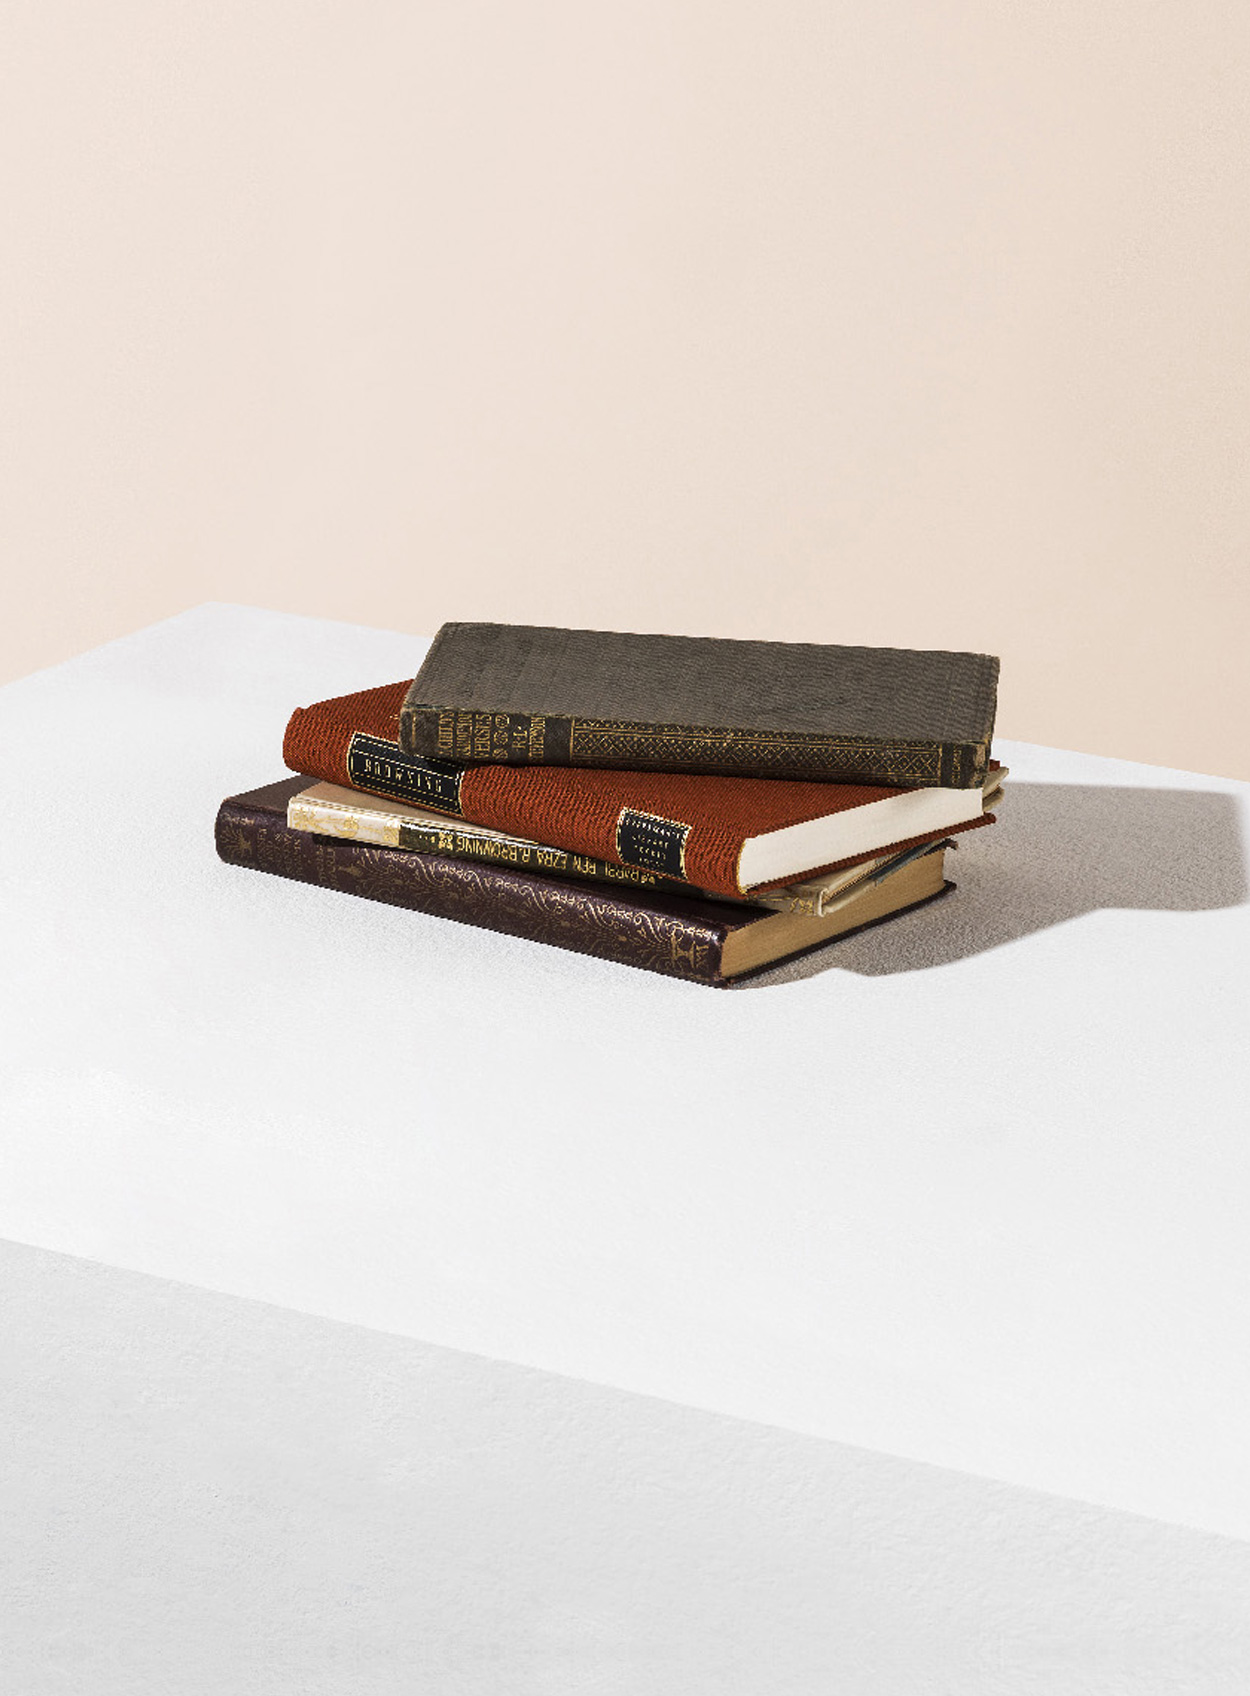 Artful stack of leather bound books